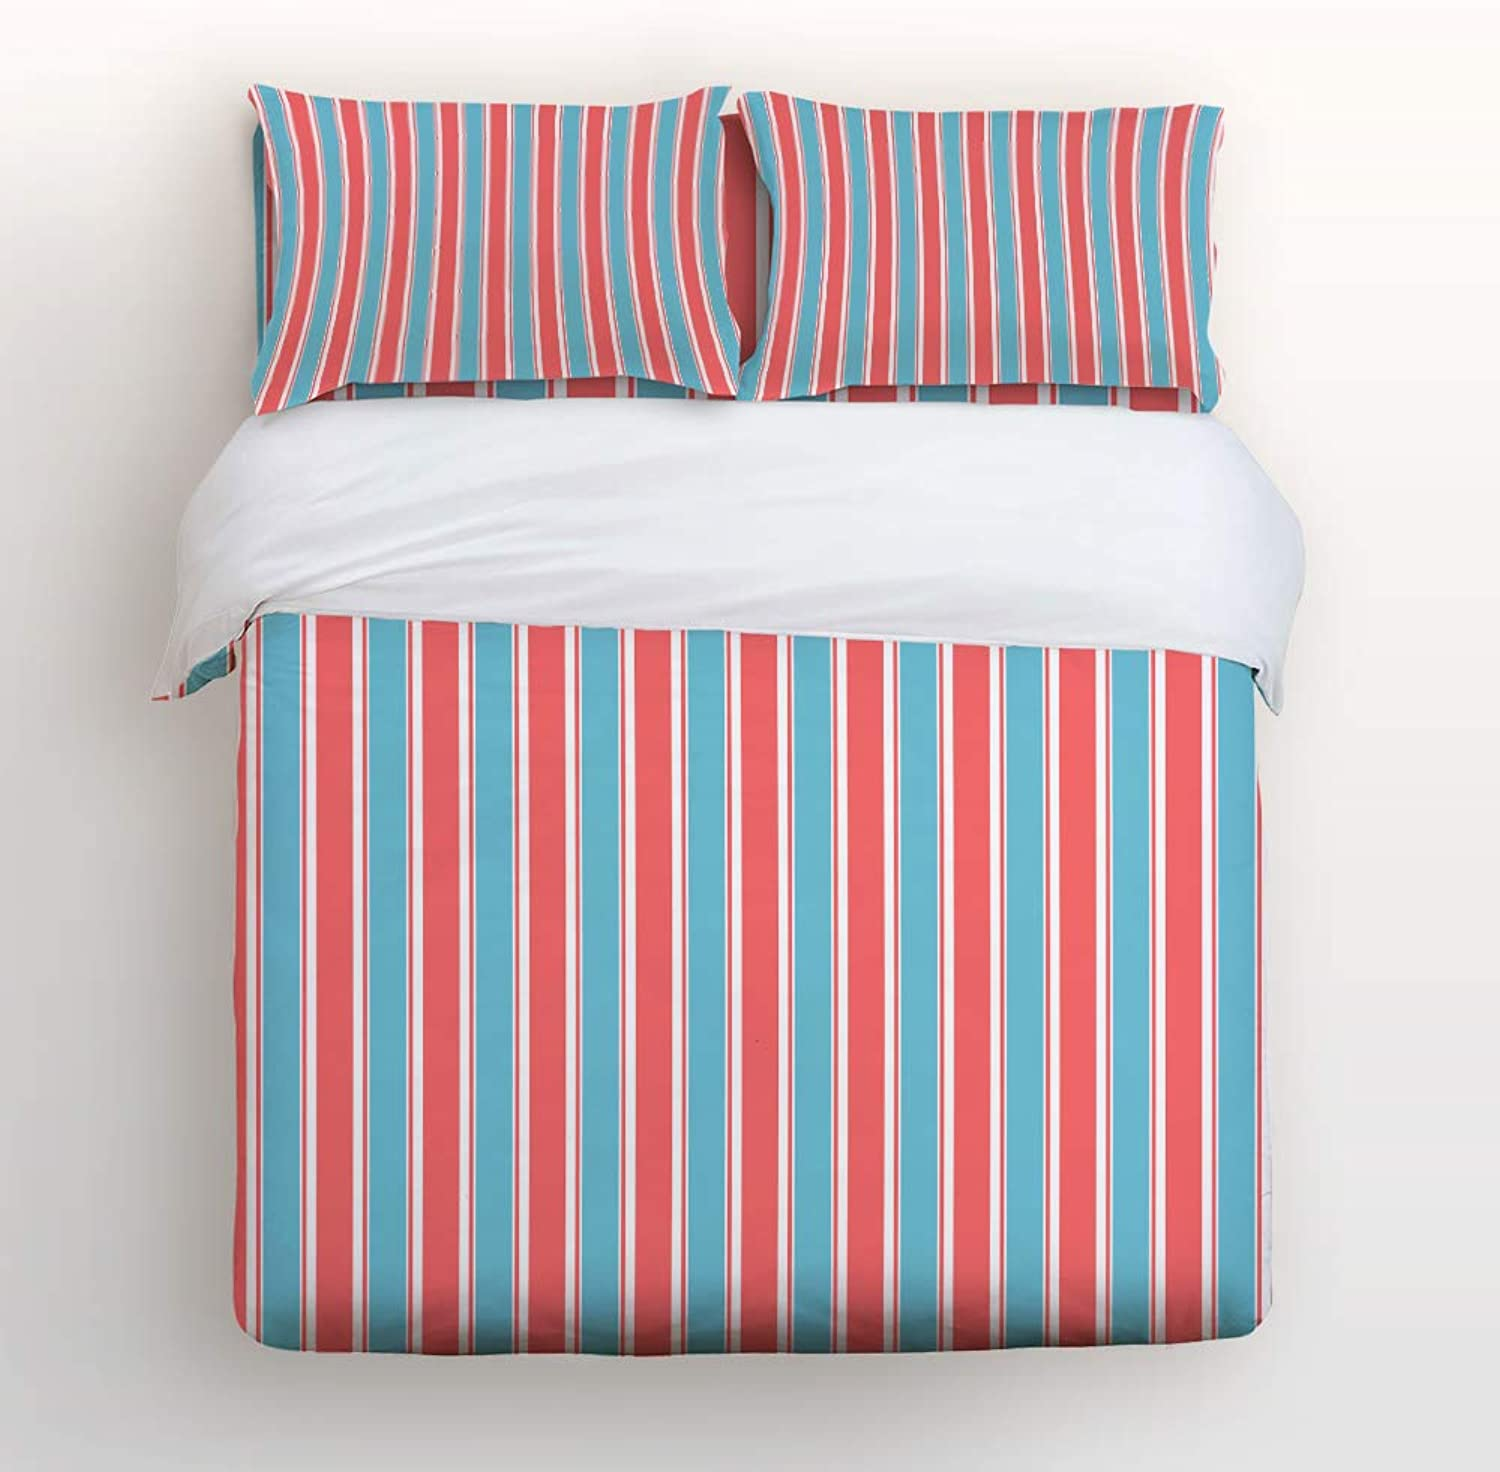 Fandim Fly Bedding Set Twin Size bluee and Red Red Red Stripes